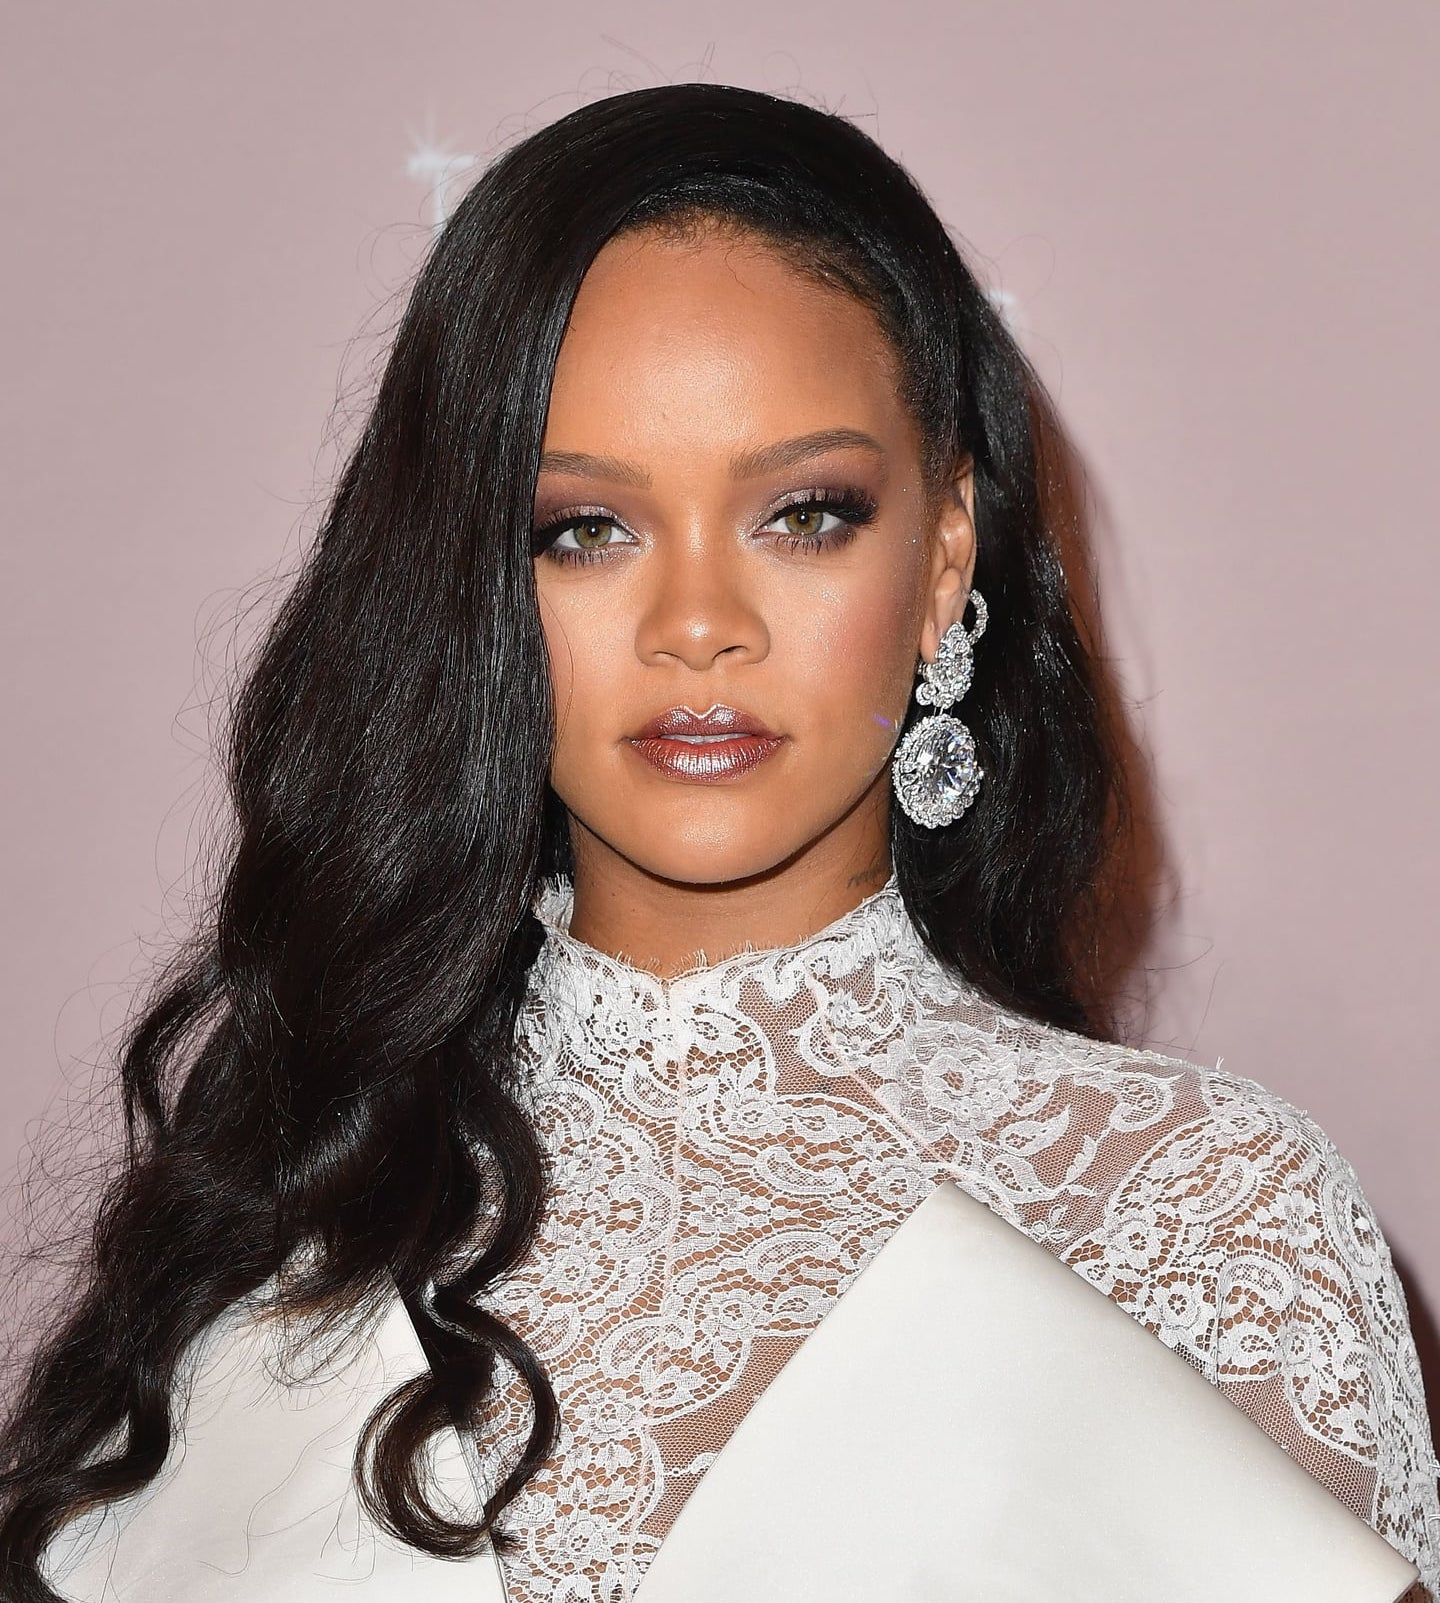 5 rihanna 10 Musicians You Didn't Know Had Terrible Childhoods